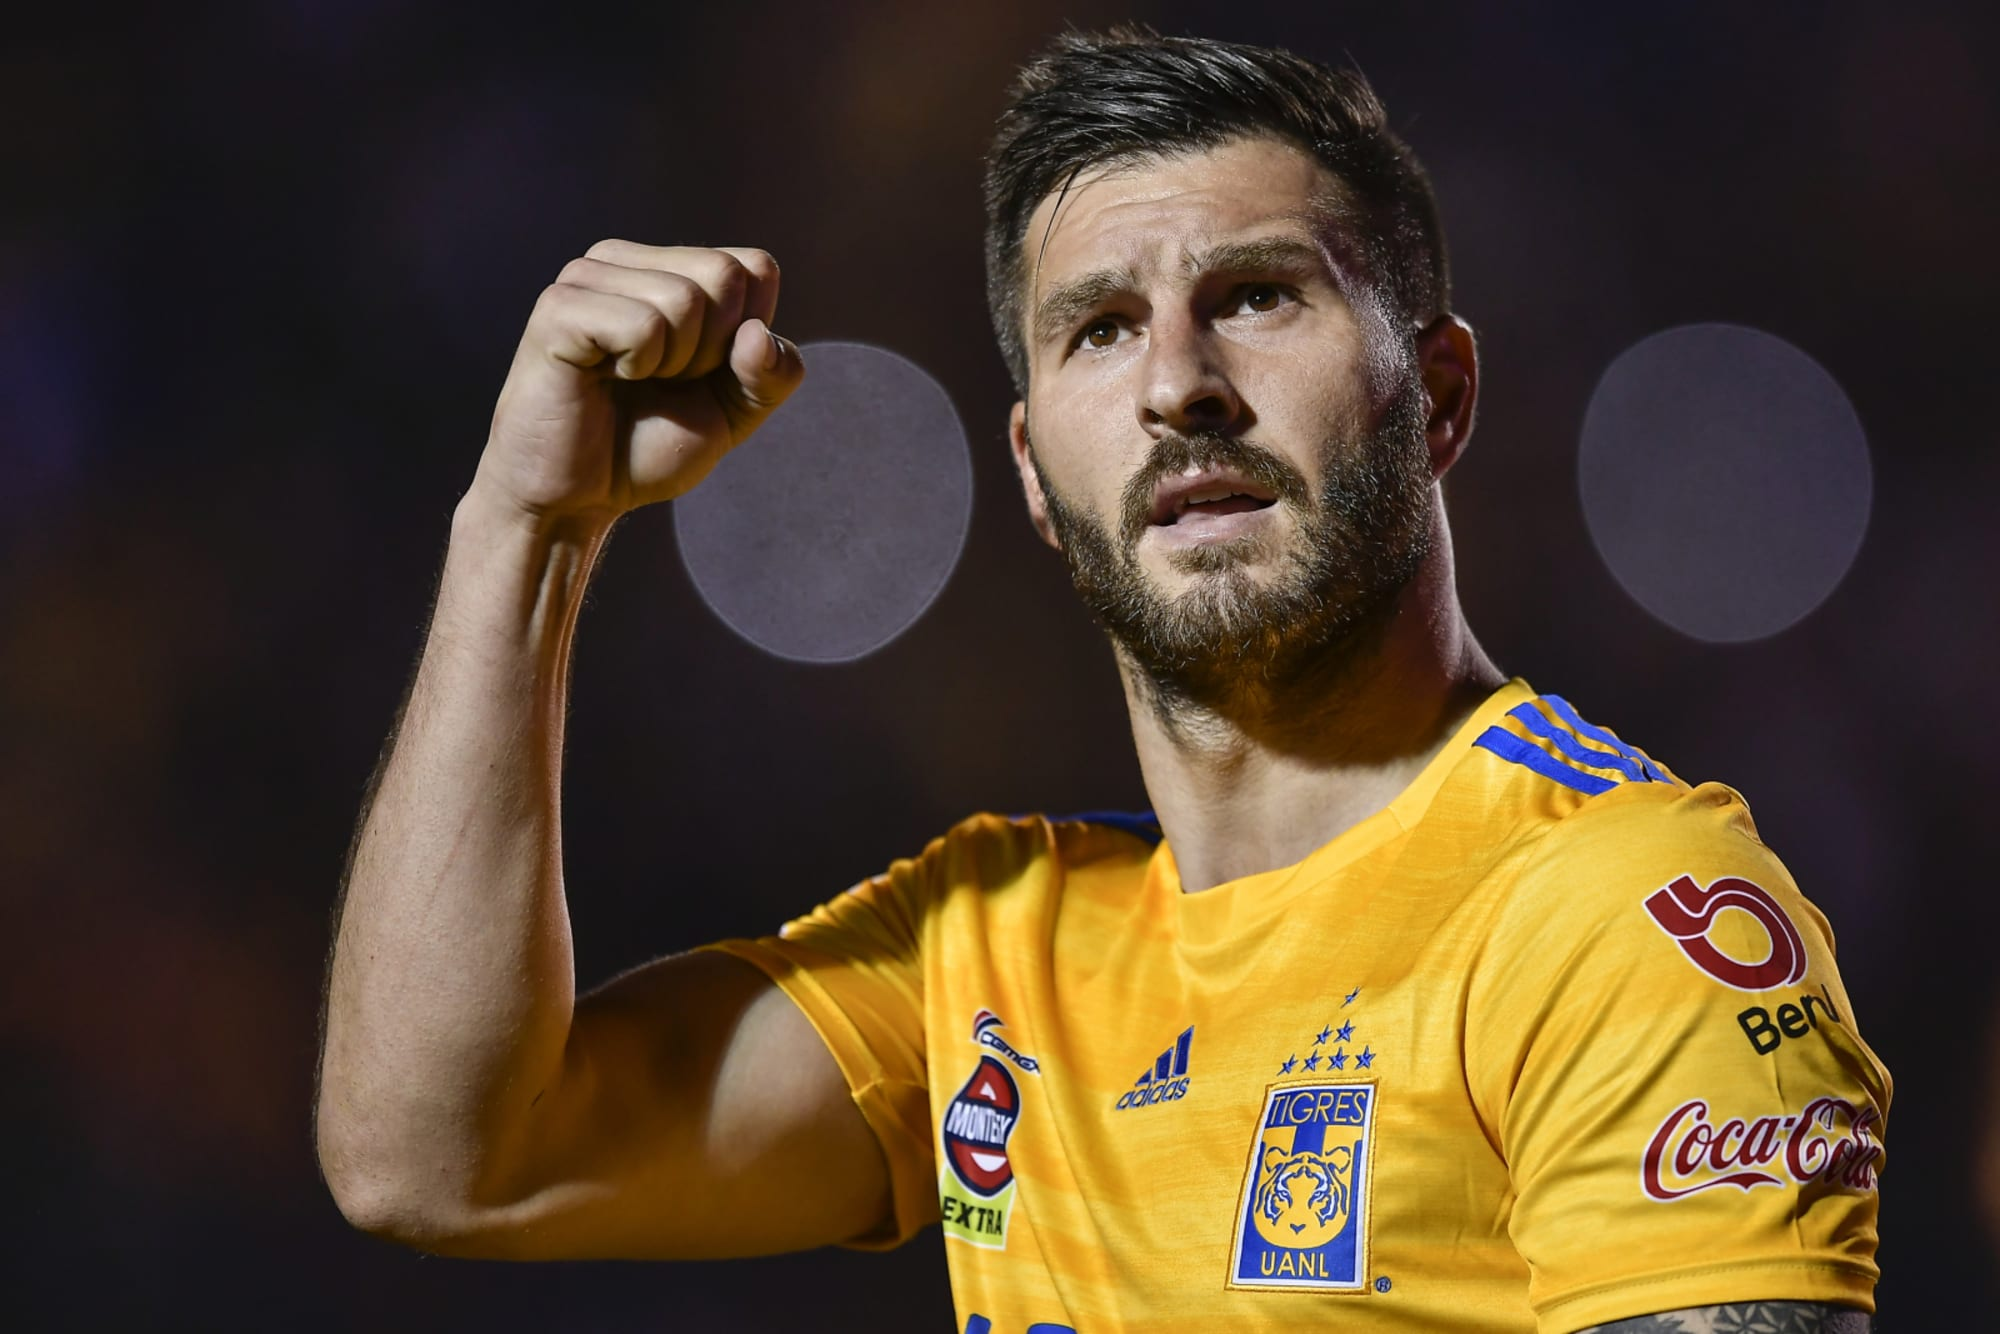 Liga MX recap: Andre-Pierre Gignac shows his greatness once again